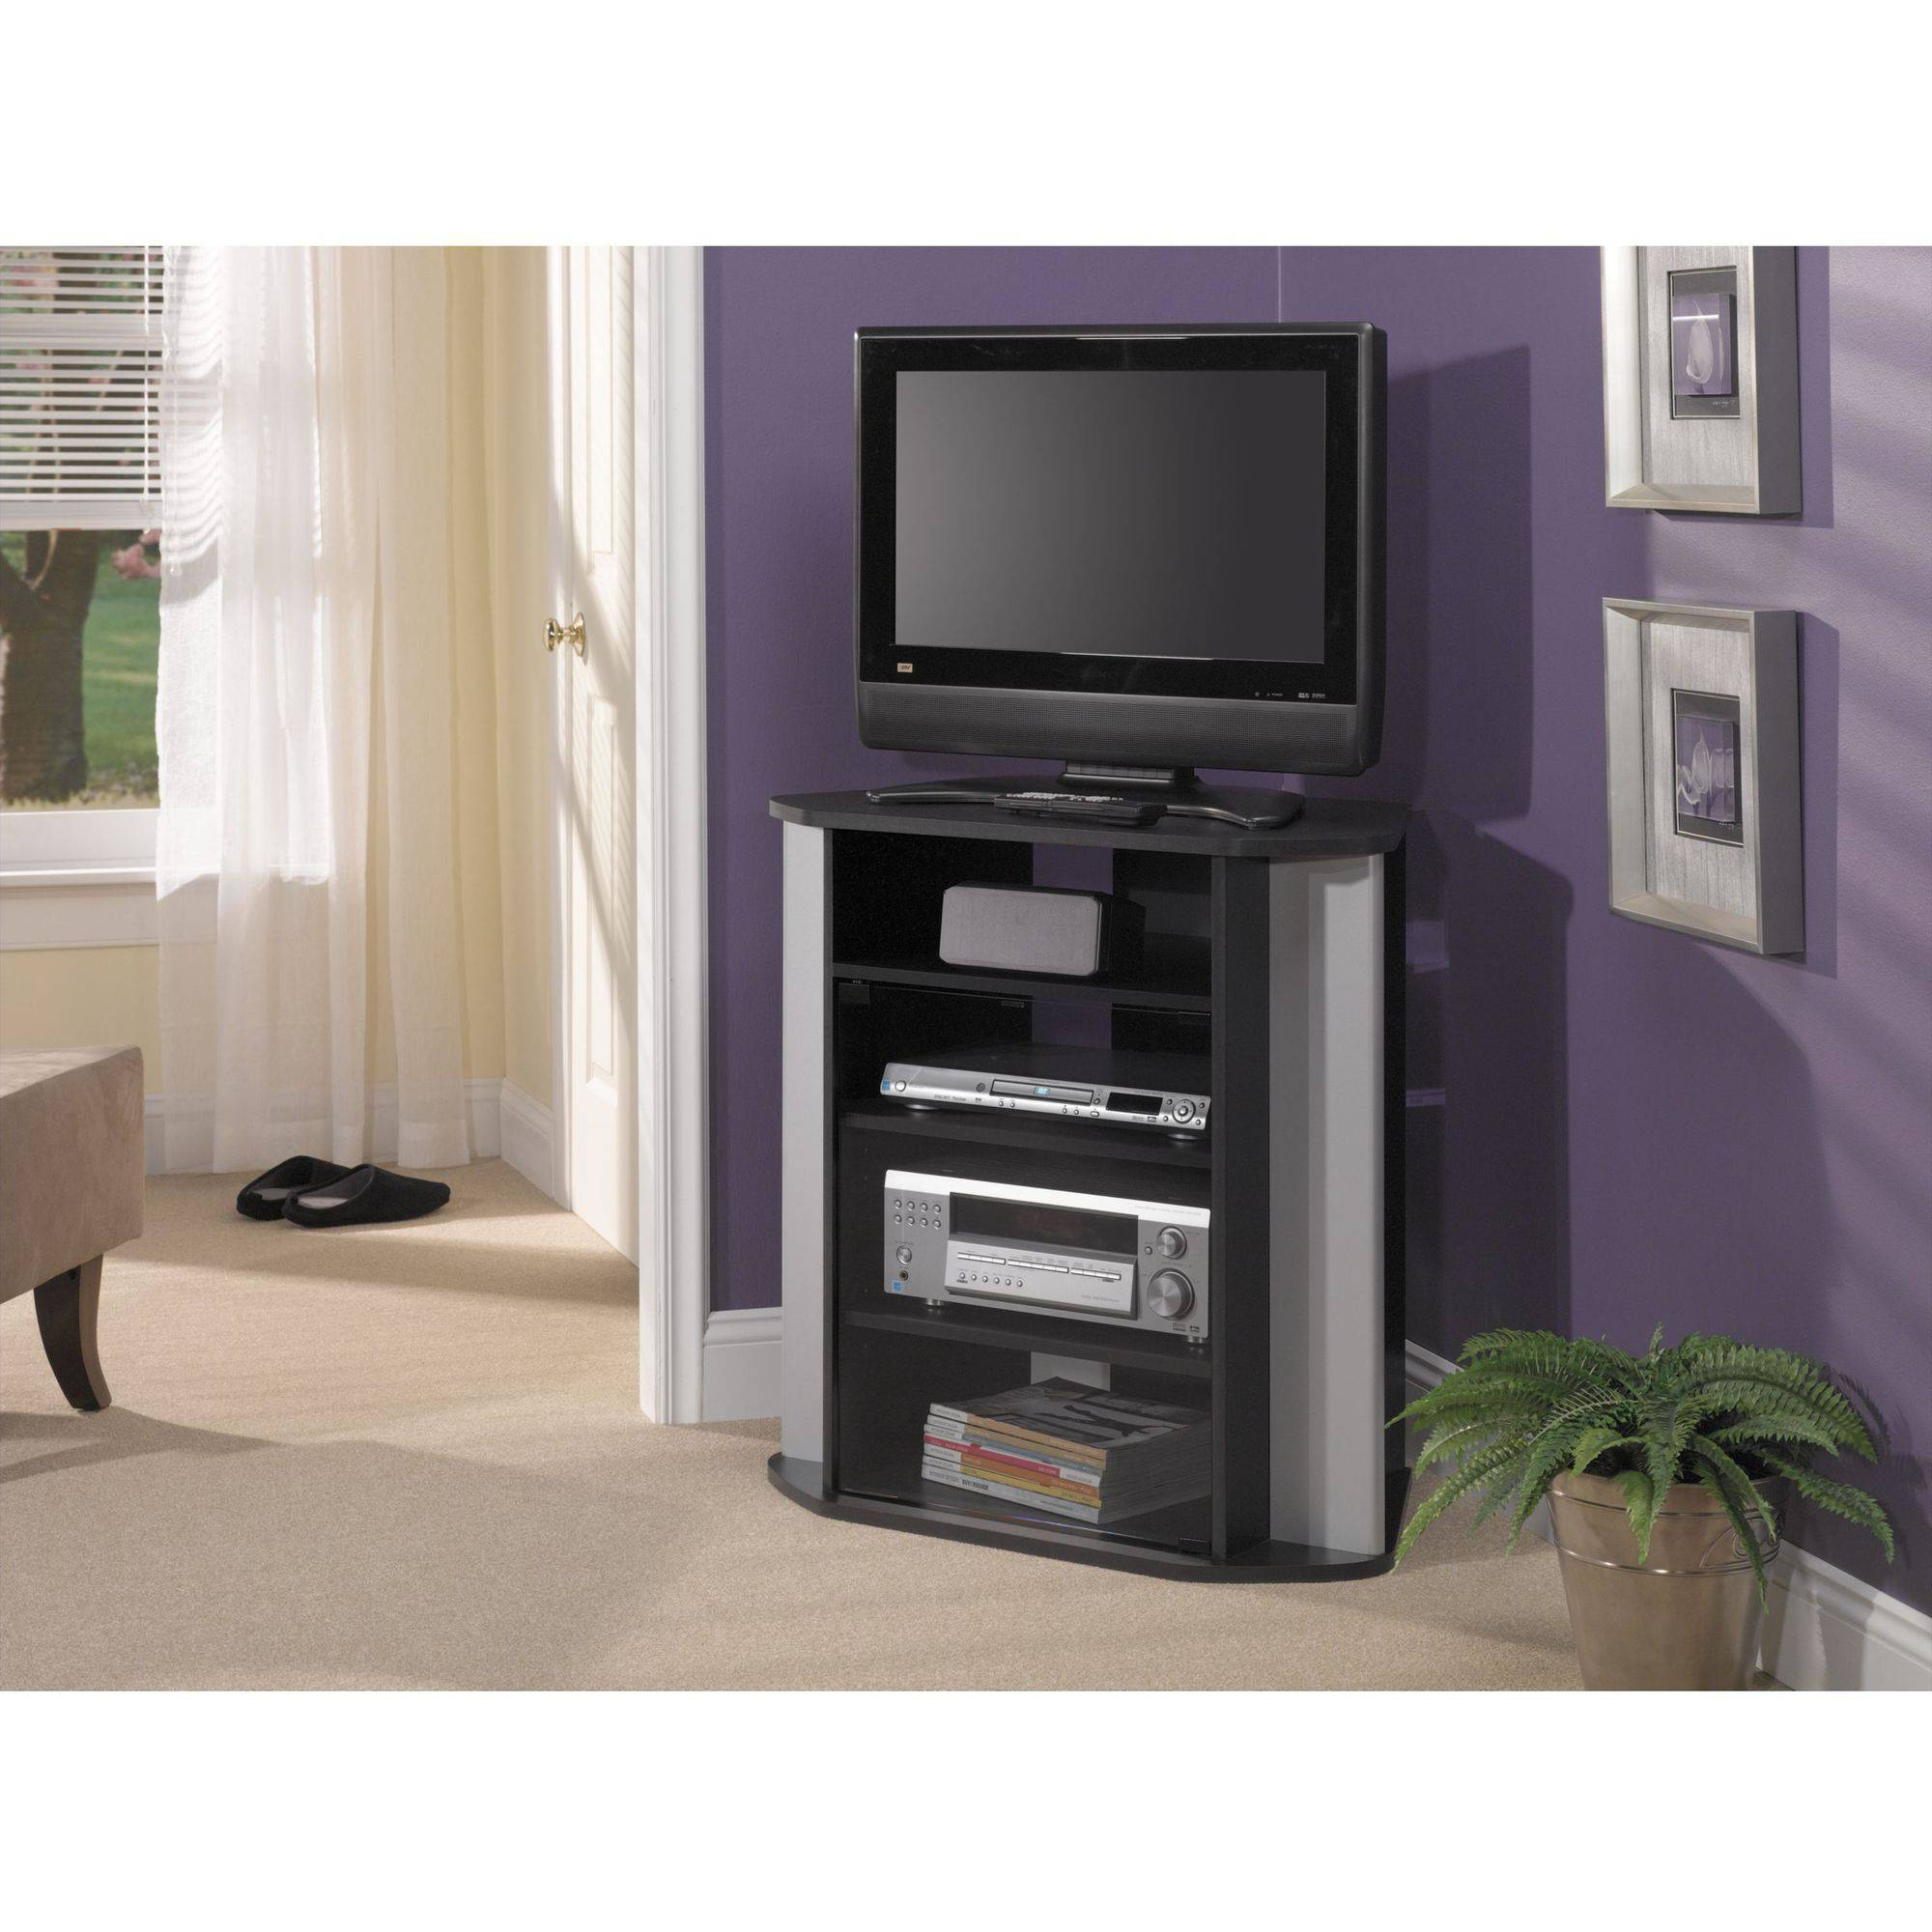 Superbe Bush Furniture Visions Tall Corner TV Stand In Black And Metallic